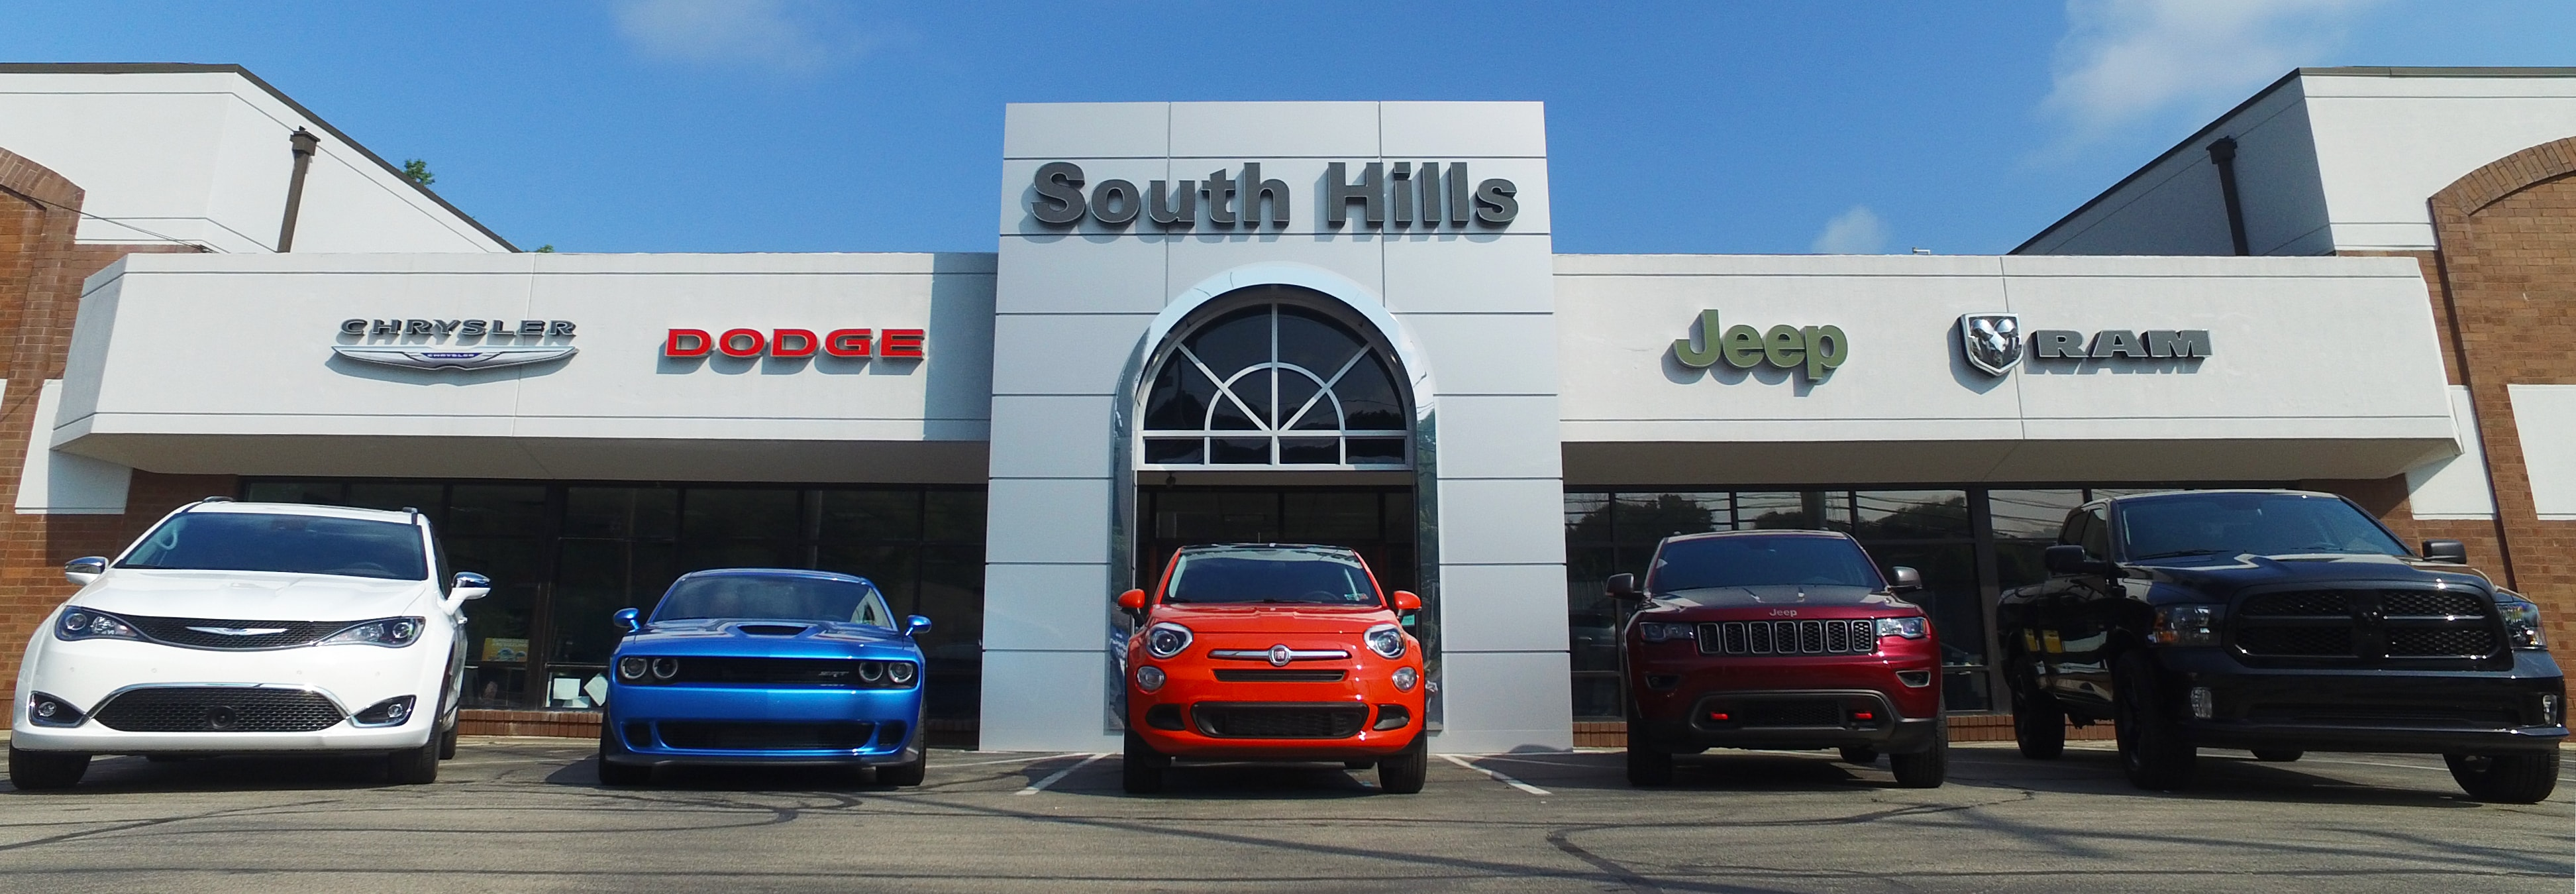 South Hills Chrysler Dodge Jeep Ram And FIAT  Washington County And The  Greater Pittsburgh Areau0027s Best Location For A Wide Selection Of Chrysler,  Dodge, ...